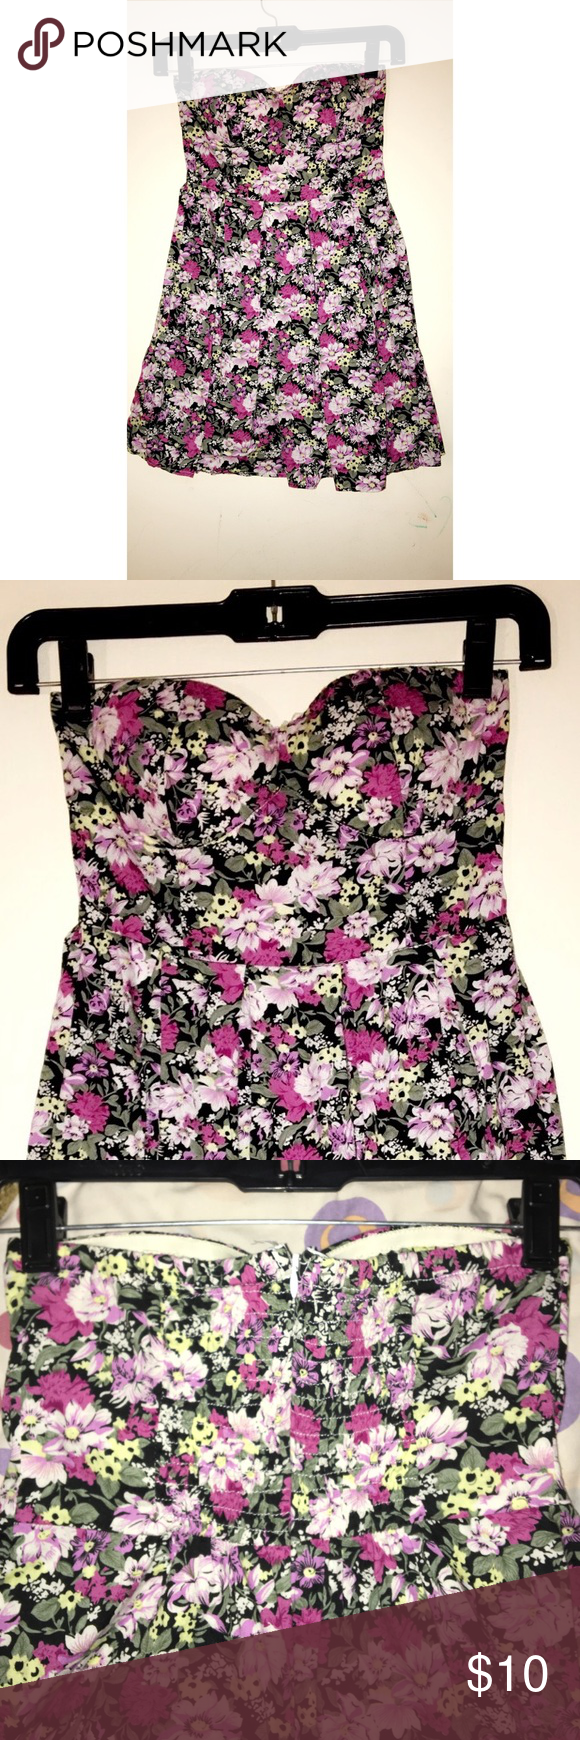 Floral print strapless dress Shades of purple flowers. Loose, comfortable, super cute and perfect for summer! Hidden zipper in the back and also a padded top. Worn a few times, in good condition. Dresses Strapless